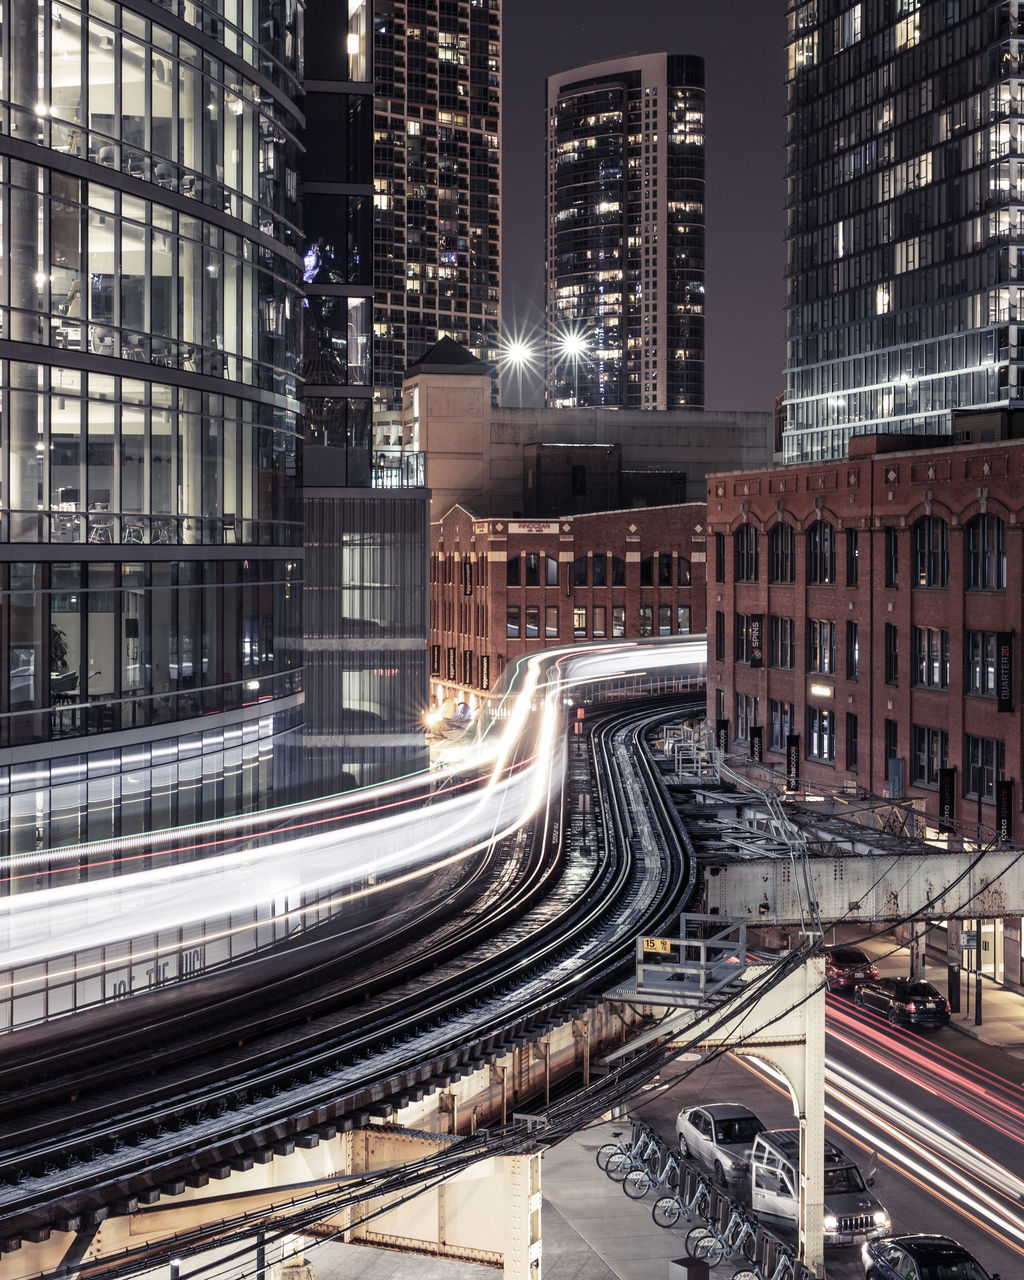 architecture, building exterior, illuminated, built structure, city, night, motion, transportation, long exposure, light trail, street, speed, road, building, city life, office building exterior, blurred motion, cityscape, traffic, residential district, skyscraper, no people, outdoors, bridge - man made structure, multiple lane highway, modern, financial district